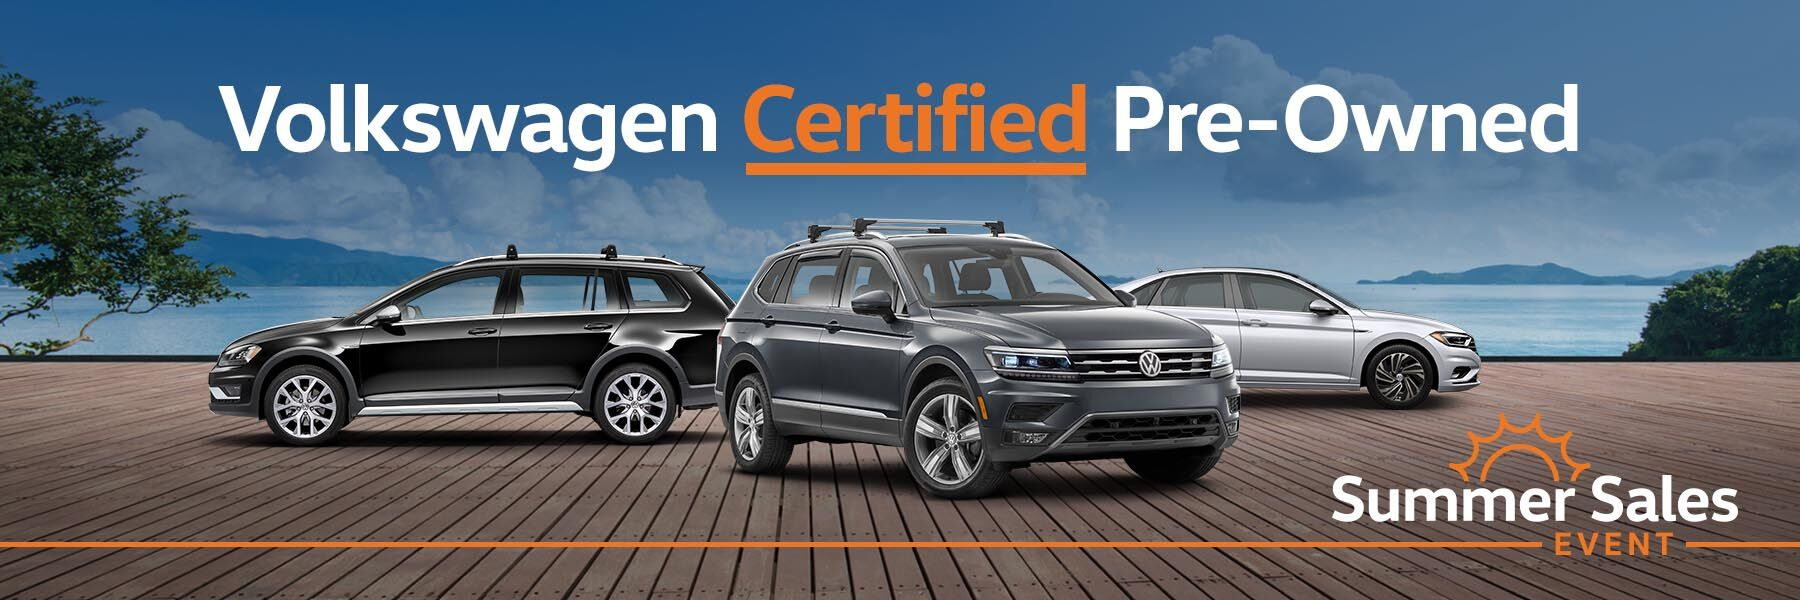 Volkswagen Certified Pre-Owned in Brainerd, MN